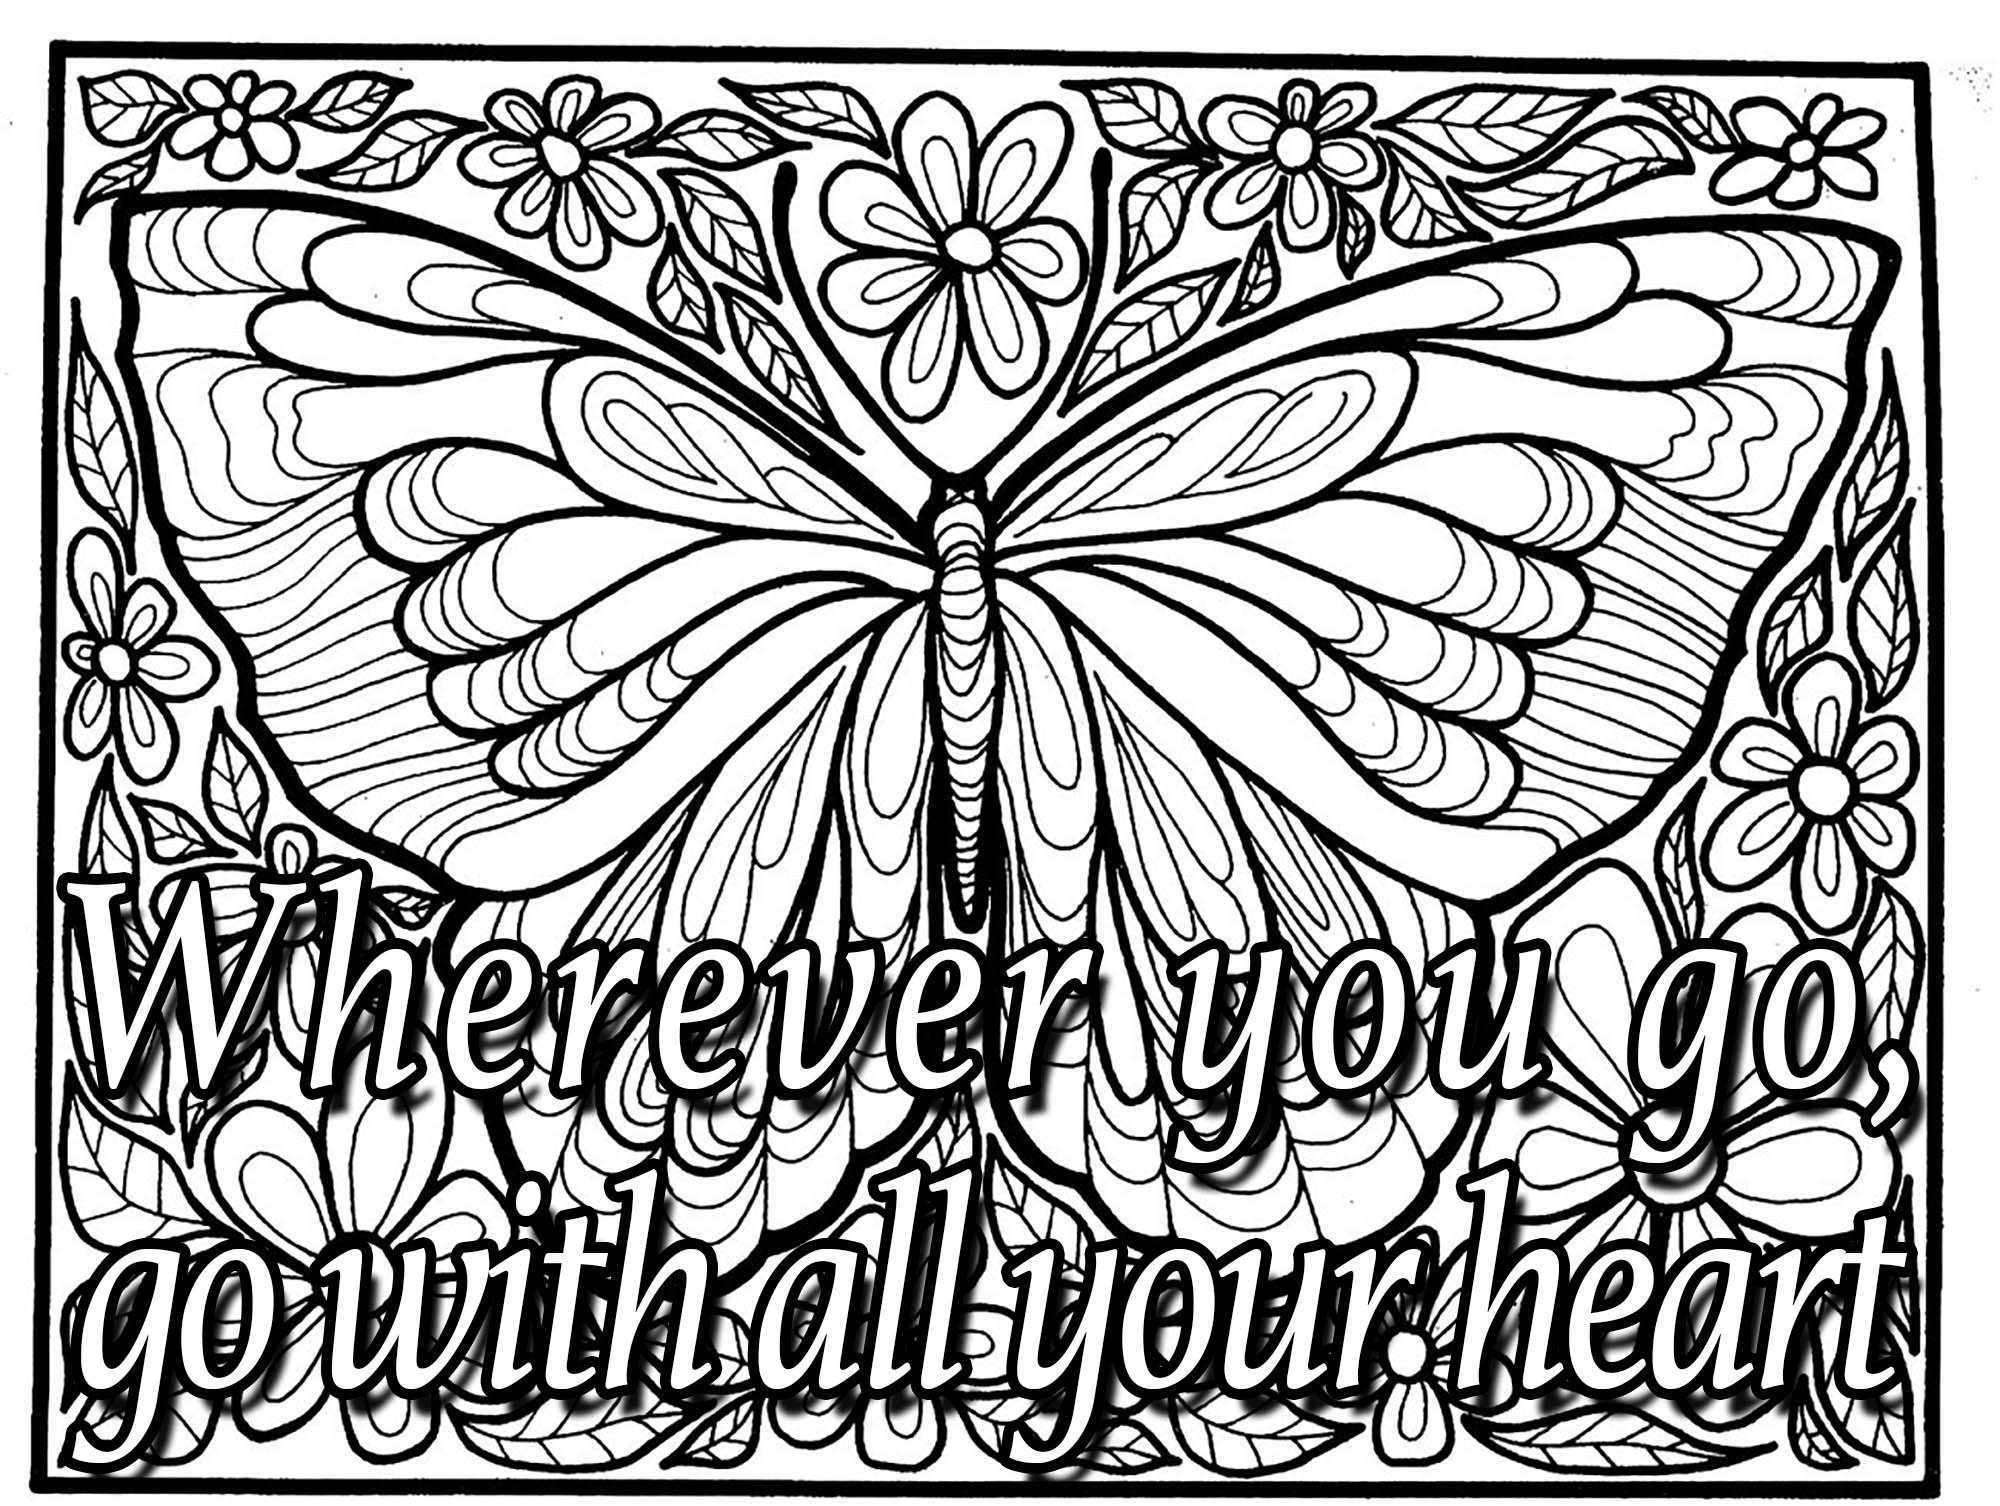 Quote wherever you go - Quotes Coloring Pages for Adults ...